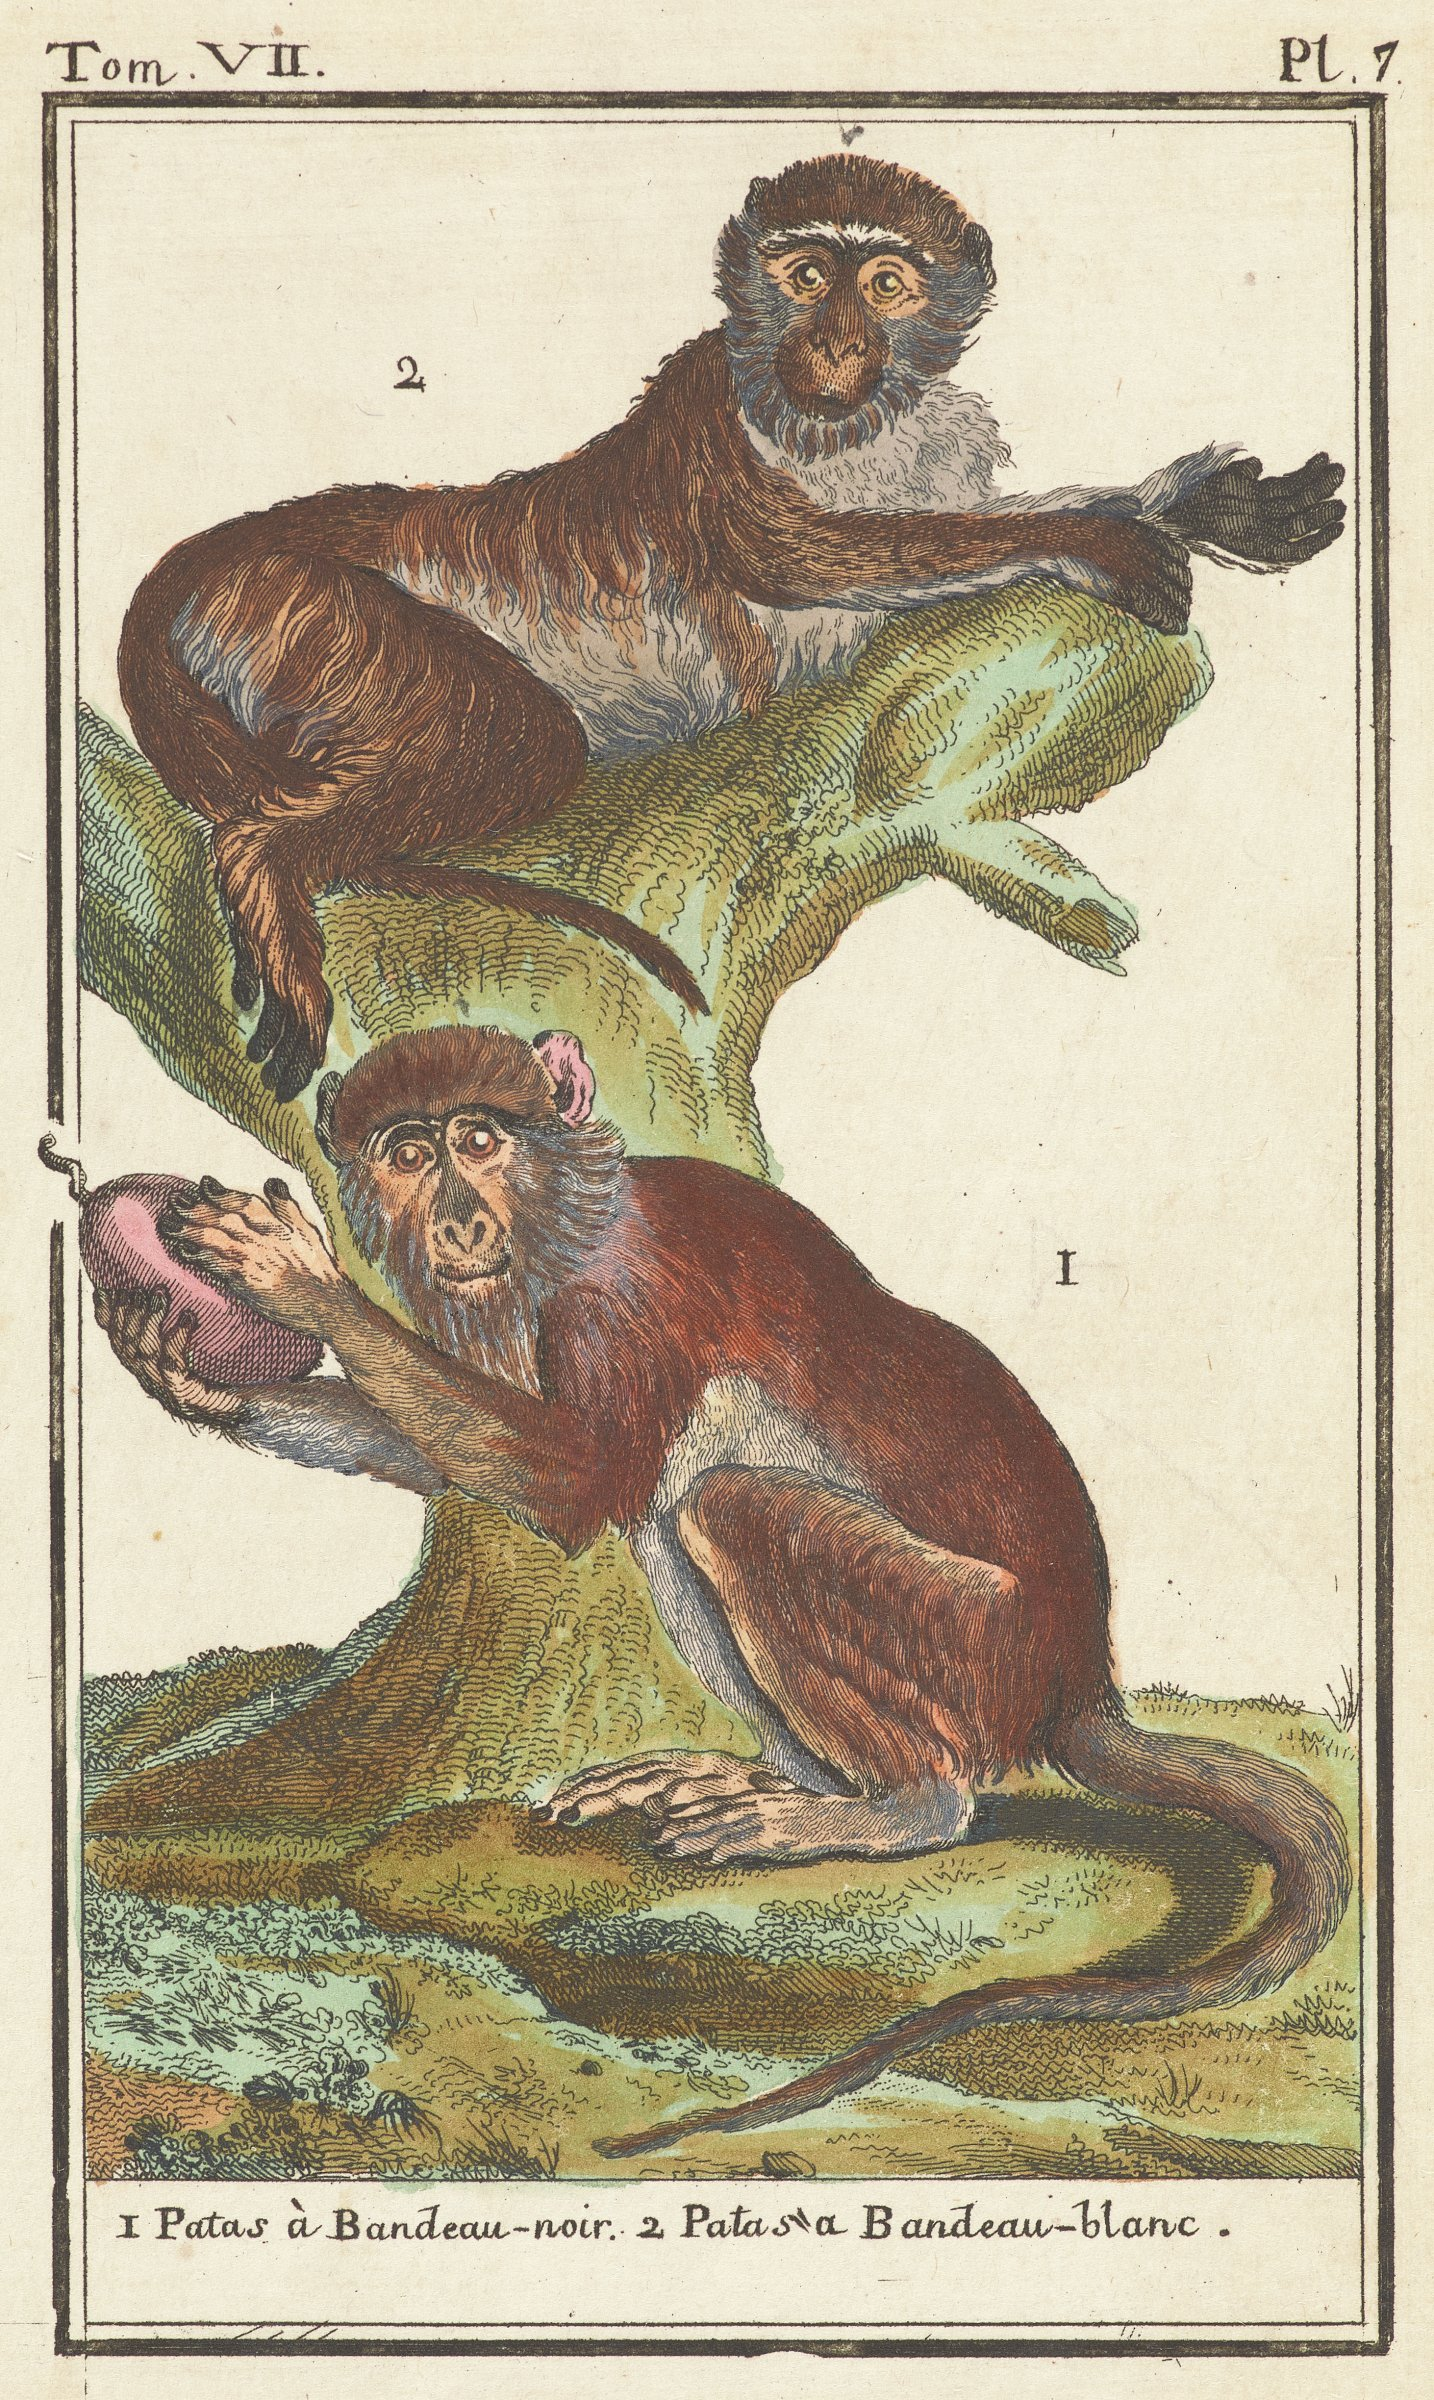 Two monkeys are depicted. One crouches on the ground holding a fruit. The other reclines on a broken tree.